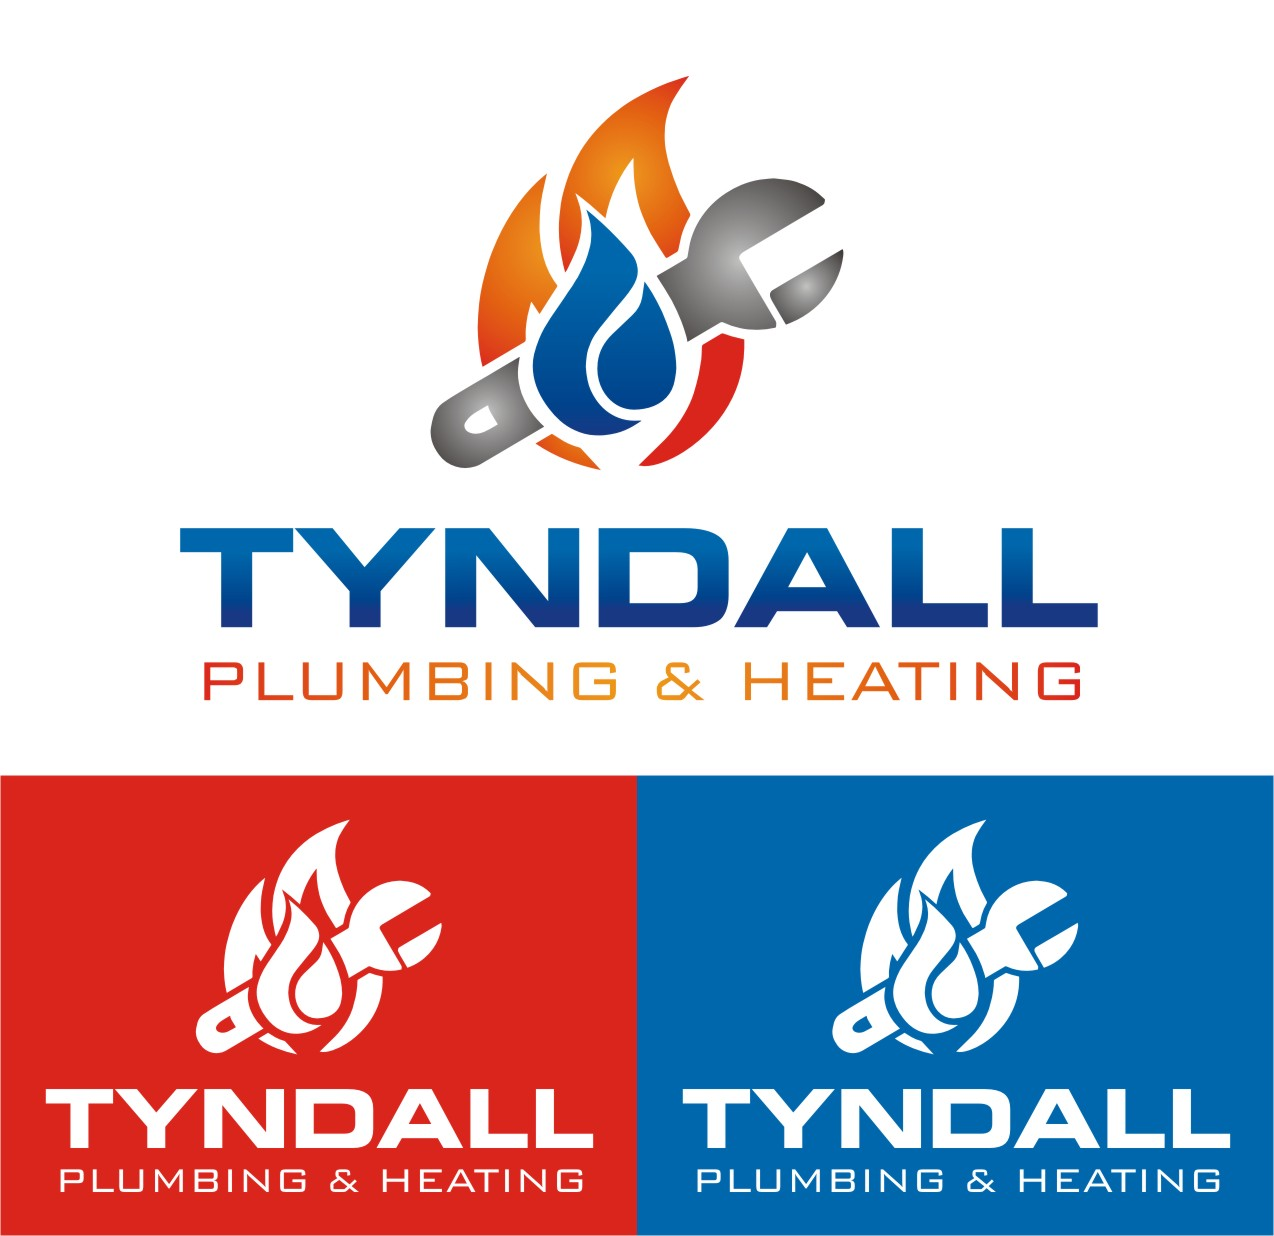 Logo Design by Spider Graphics - Entry No. 85 in the Logo Design Contest Imaginative Logo Design for Tyndall Plumbing & Heating.